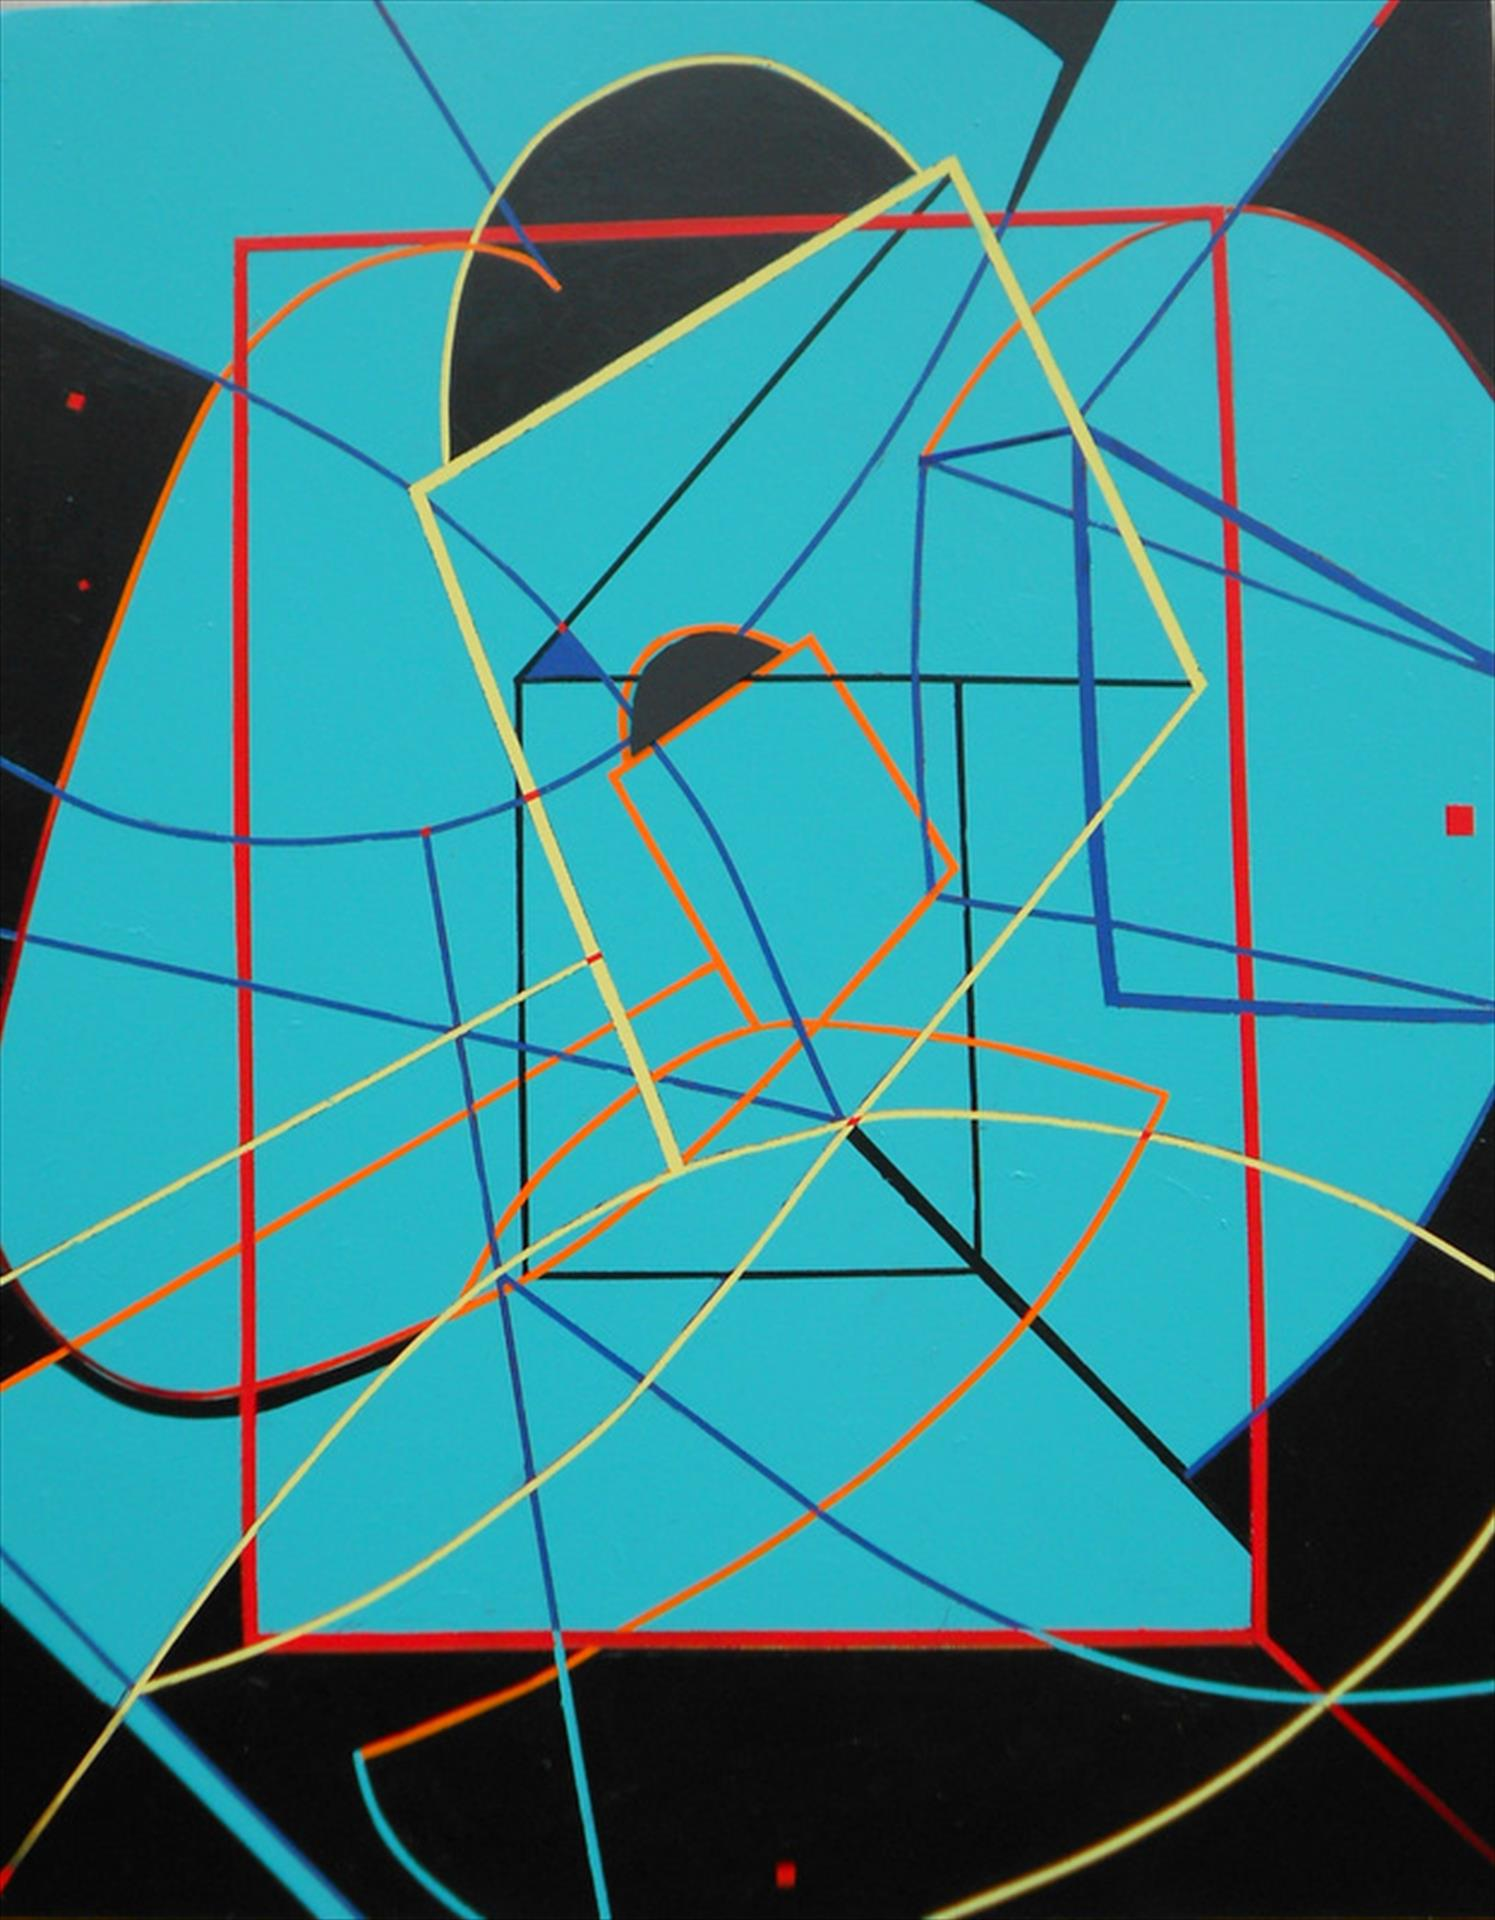 geometric painting, intersecting lines and shapes